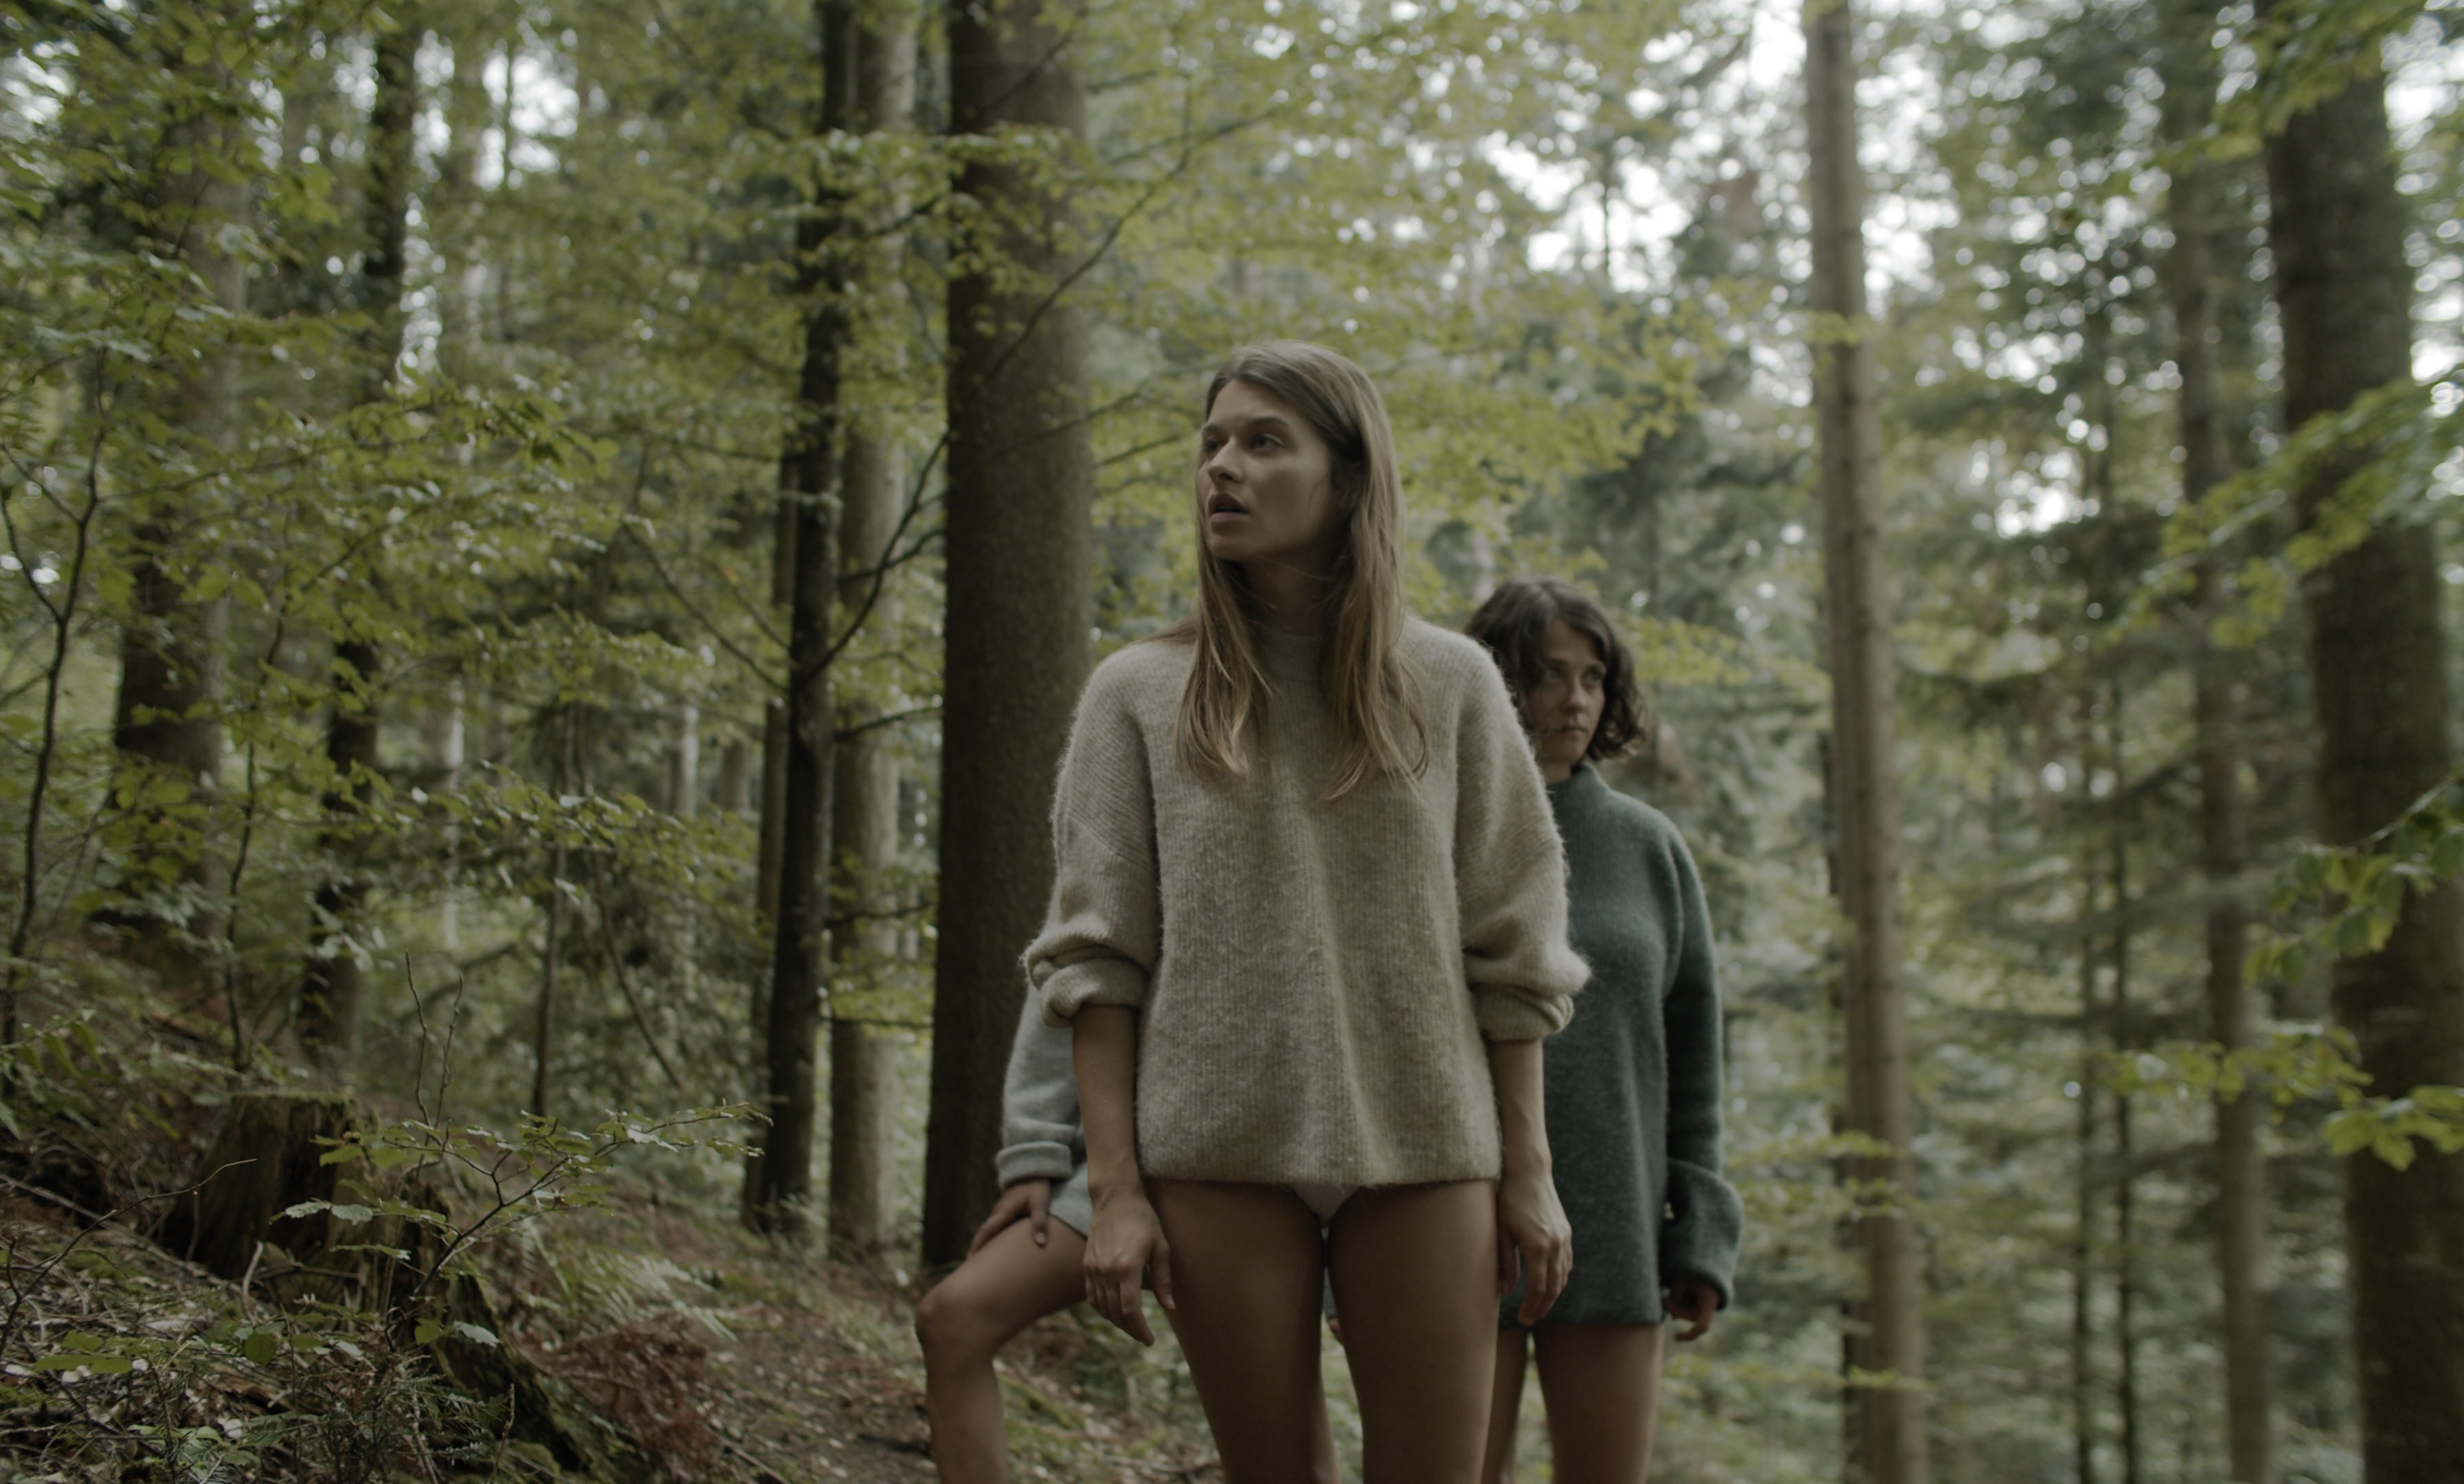 Three women with bare legs standing in a forest, looking around and searching.